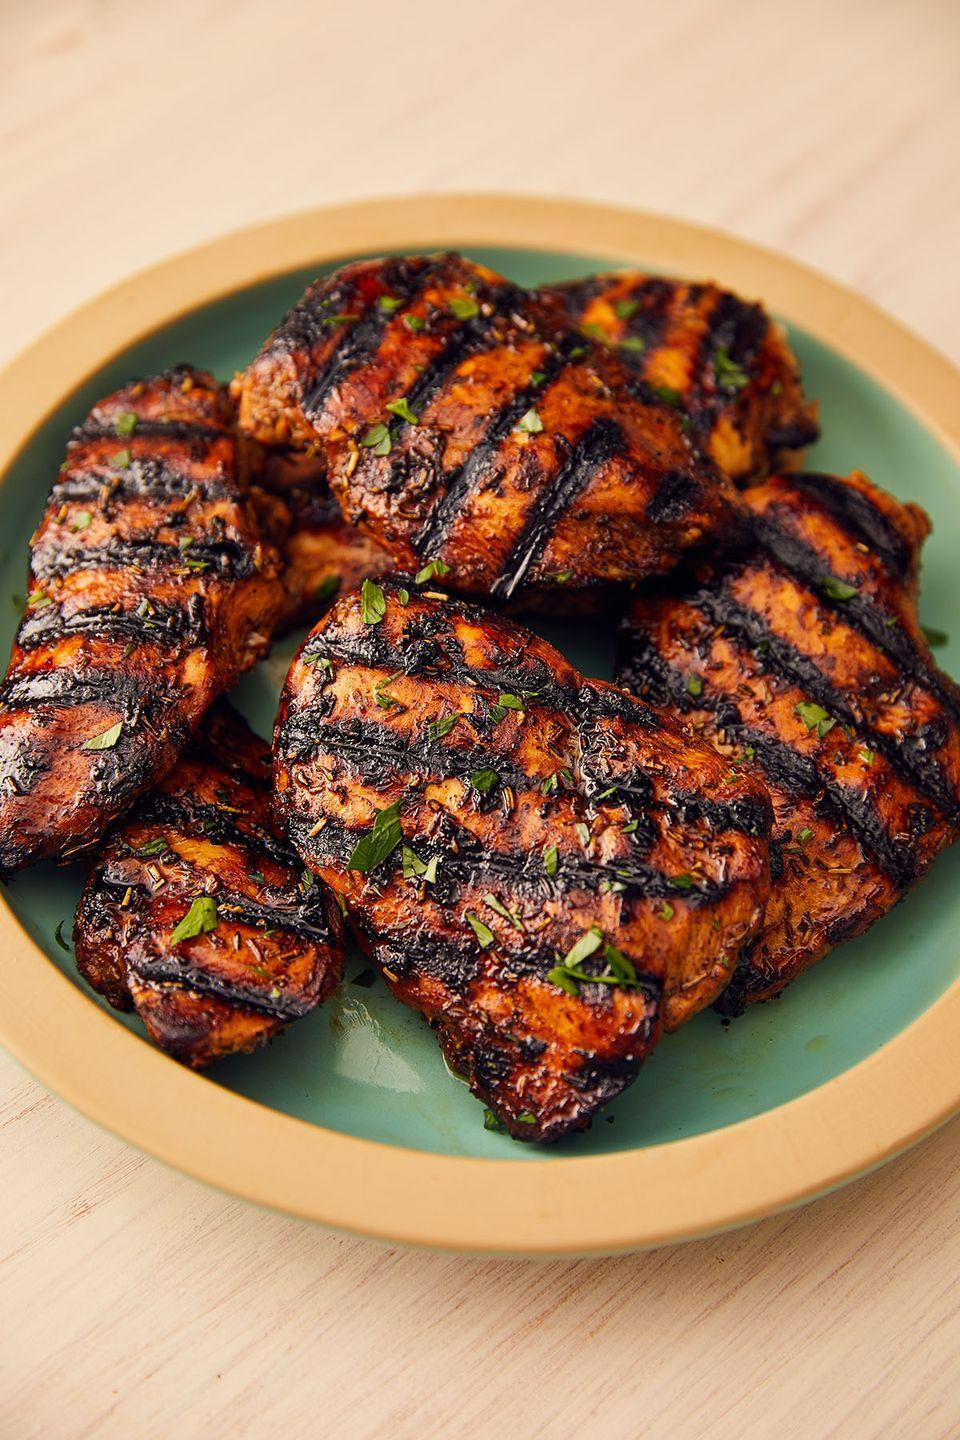 "<p>This marinade is the opposite of boring.</p><p>Get the recipe from <a href=""https://www.delish.com/cooking/recipe-ideas/a53483/best-grilled-chicken-breast-recipe/"" rel=""nofollow noopener"" target=""_blank"" data-ylk=""slk:Delish"" class=""link rapid-noclick-resp"">Delish</a>.</p>"